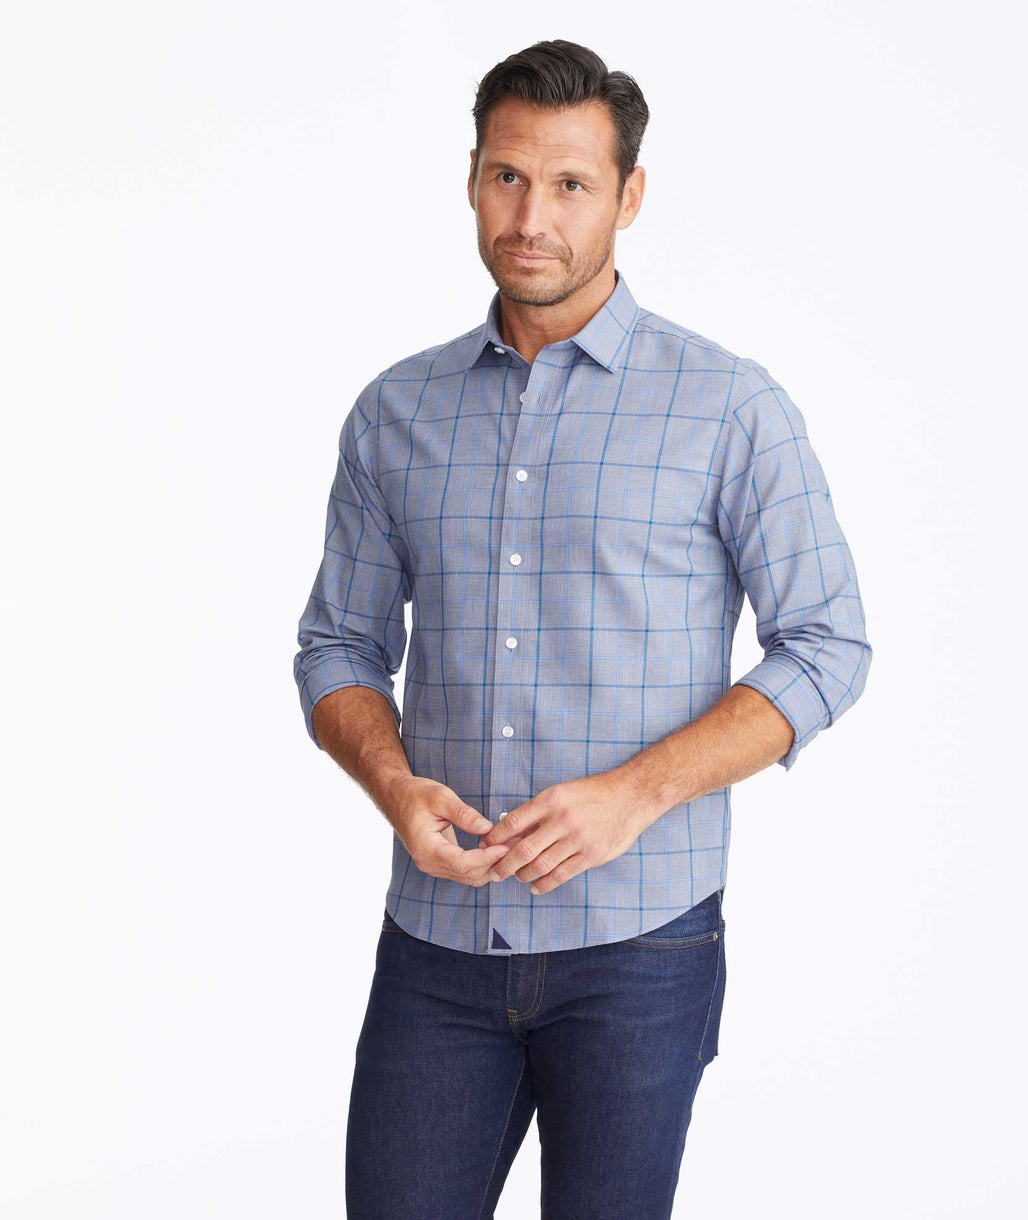 Model wearing a Navy Wrinkle-Free Ortman Shirt